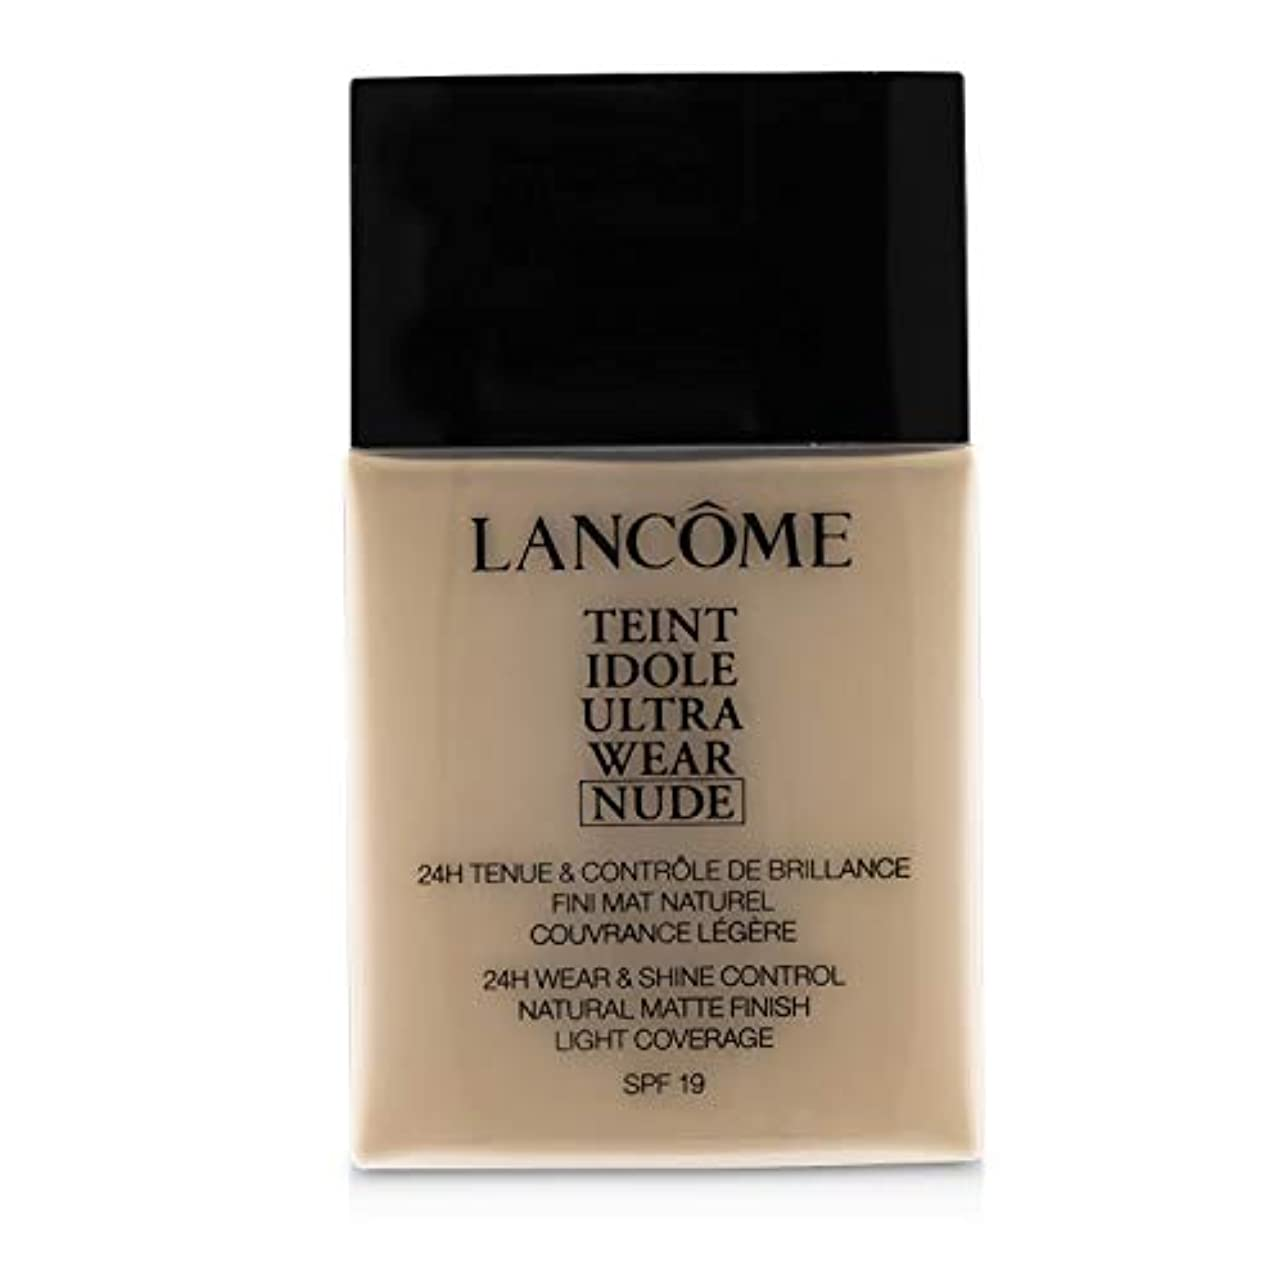 いたずら人柄不快ランコム Teint Idole Ultra Wear Nude Foundation SPF19 - # 005 Beige Ivoire 40ml/1.3oz並行輸入品